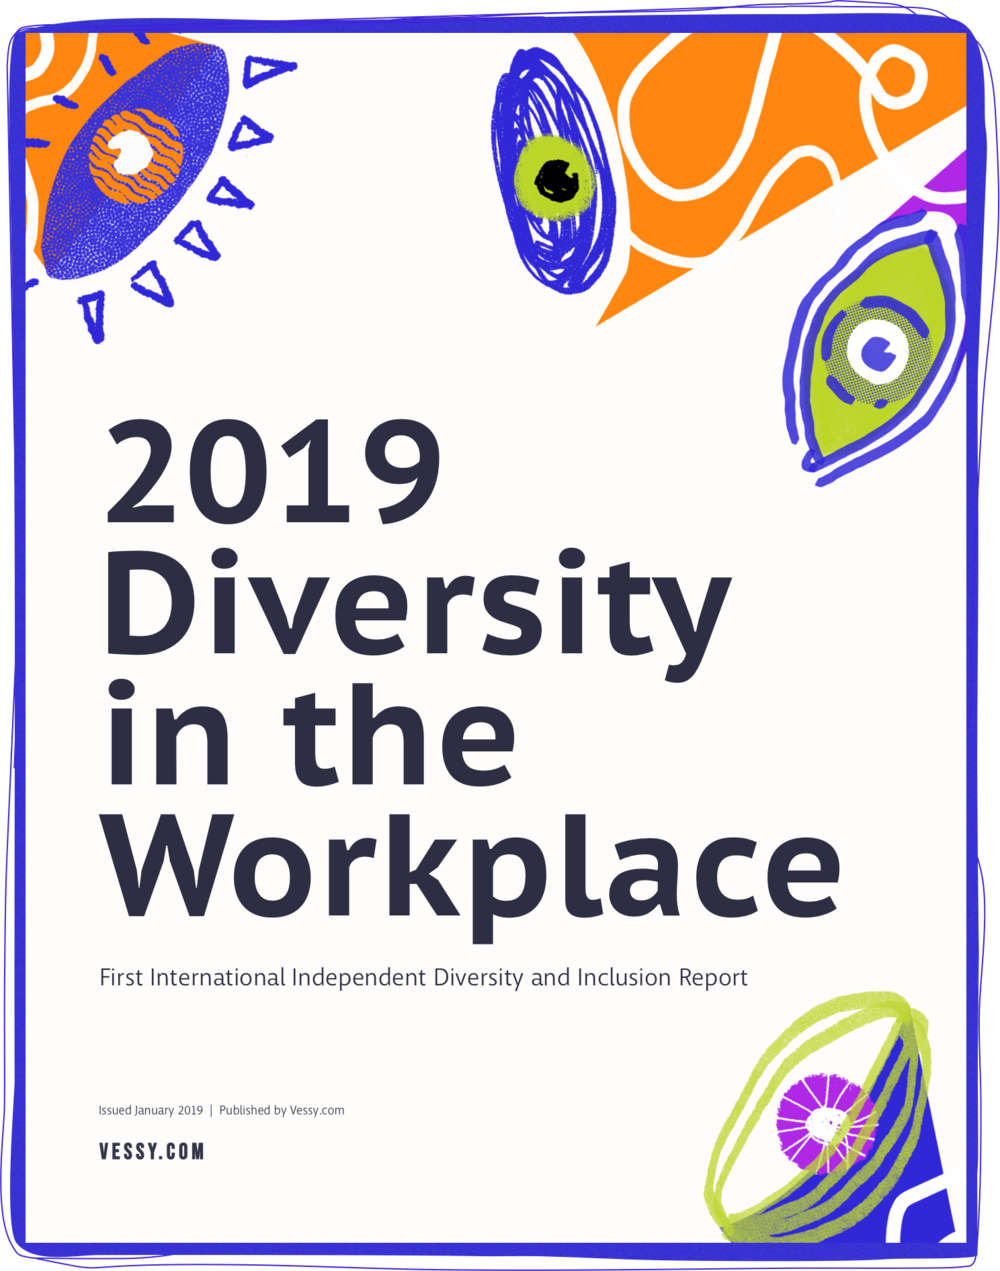 2019 Diversity in the Workplace Report